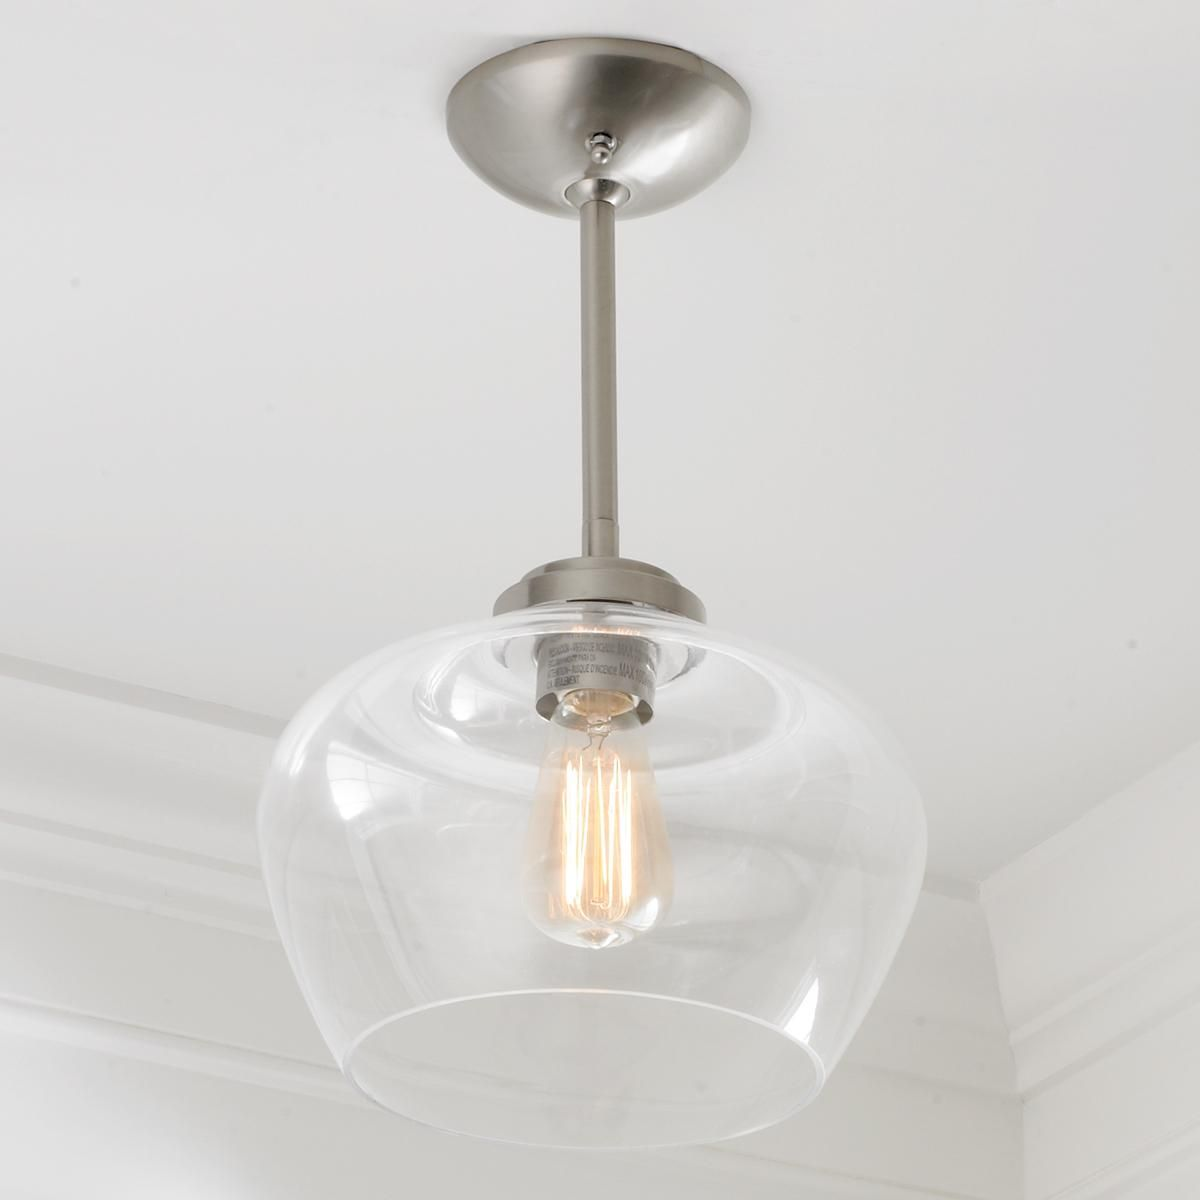 Quorum electra 8 light sputnik chandelier amp reviews wayfair - Convertible Bell Glass Semi Flush Pendant Light